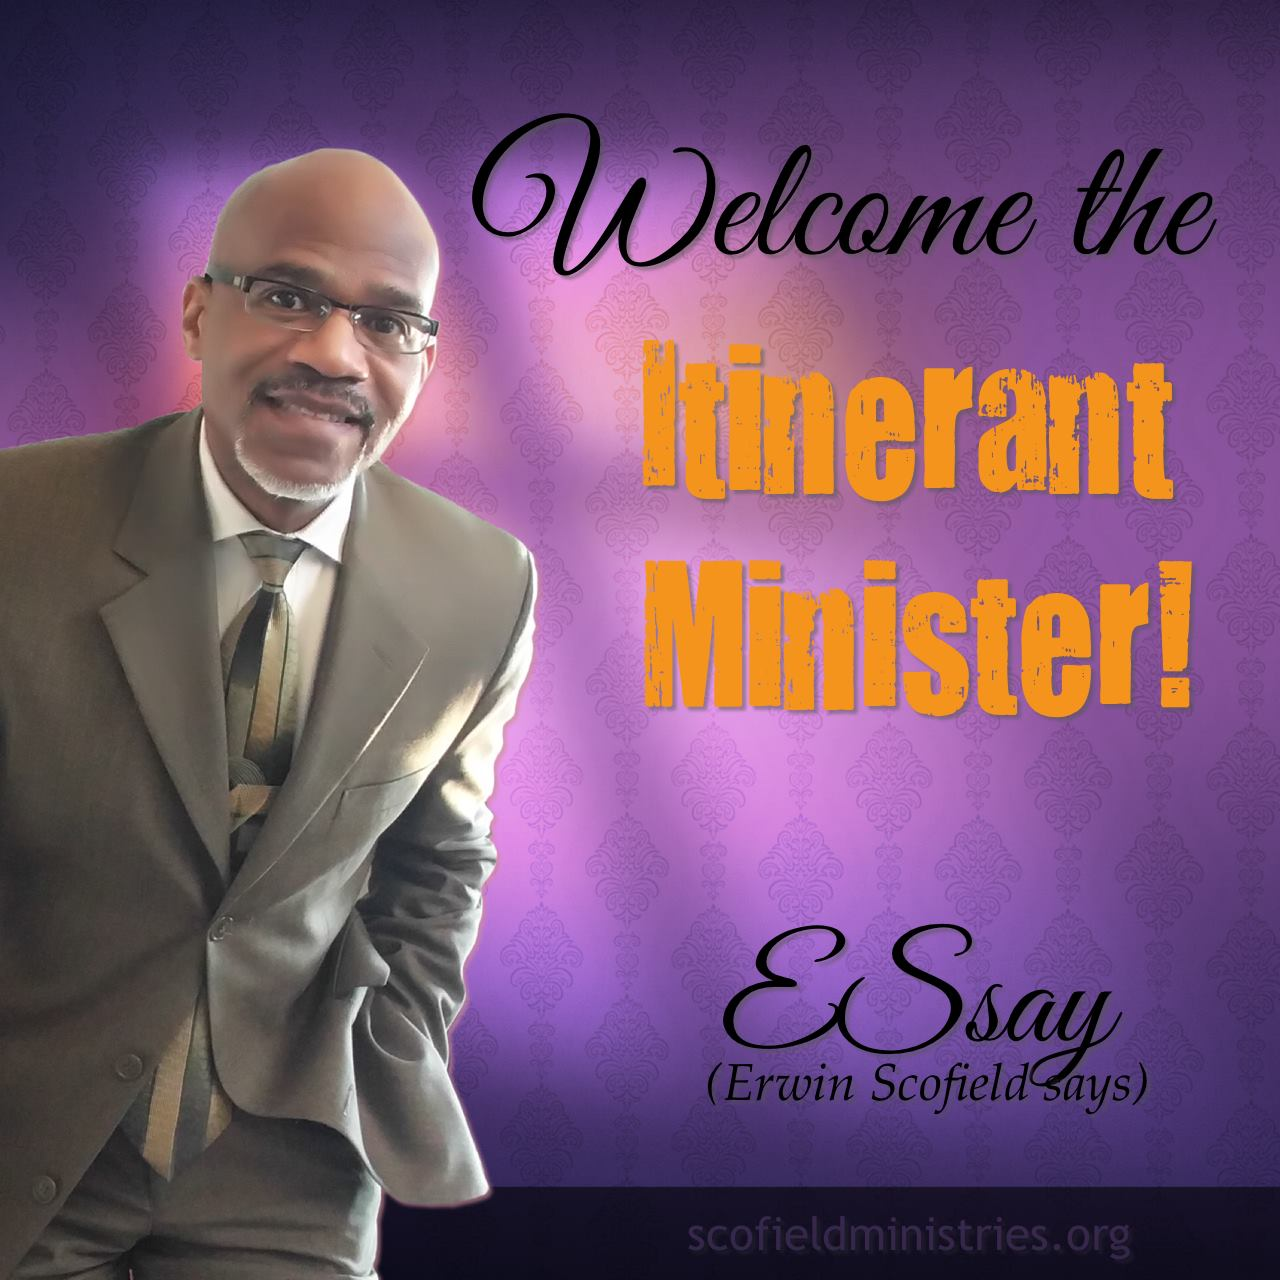 Welcome The Itinerant Minister